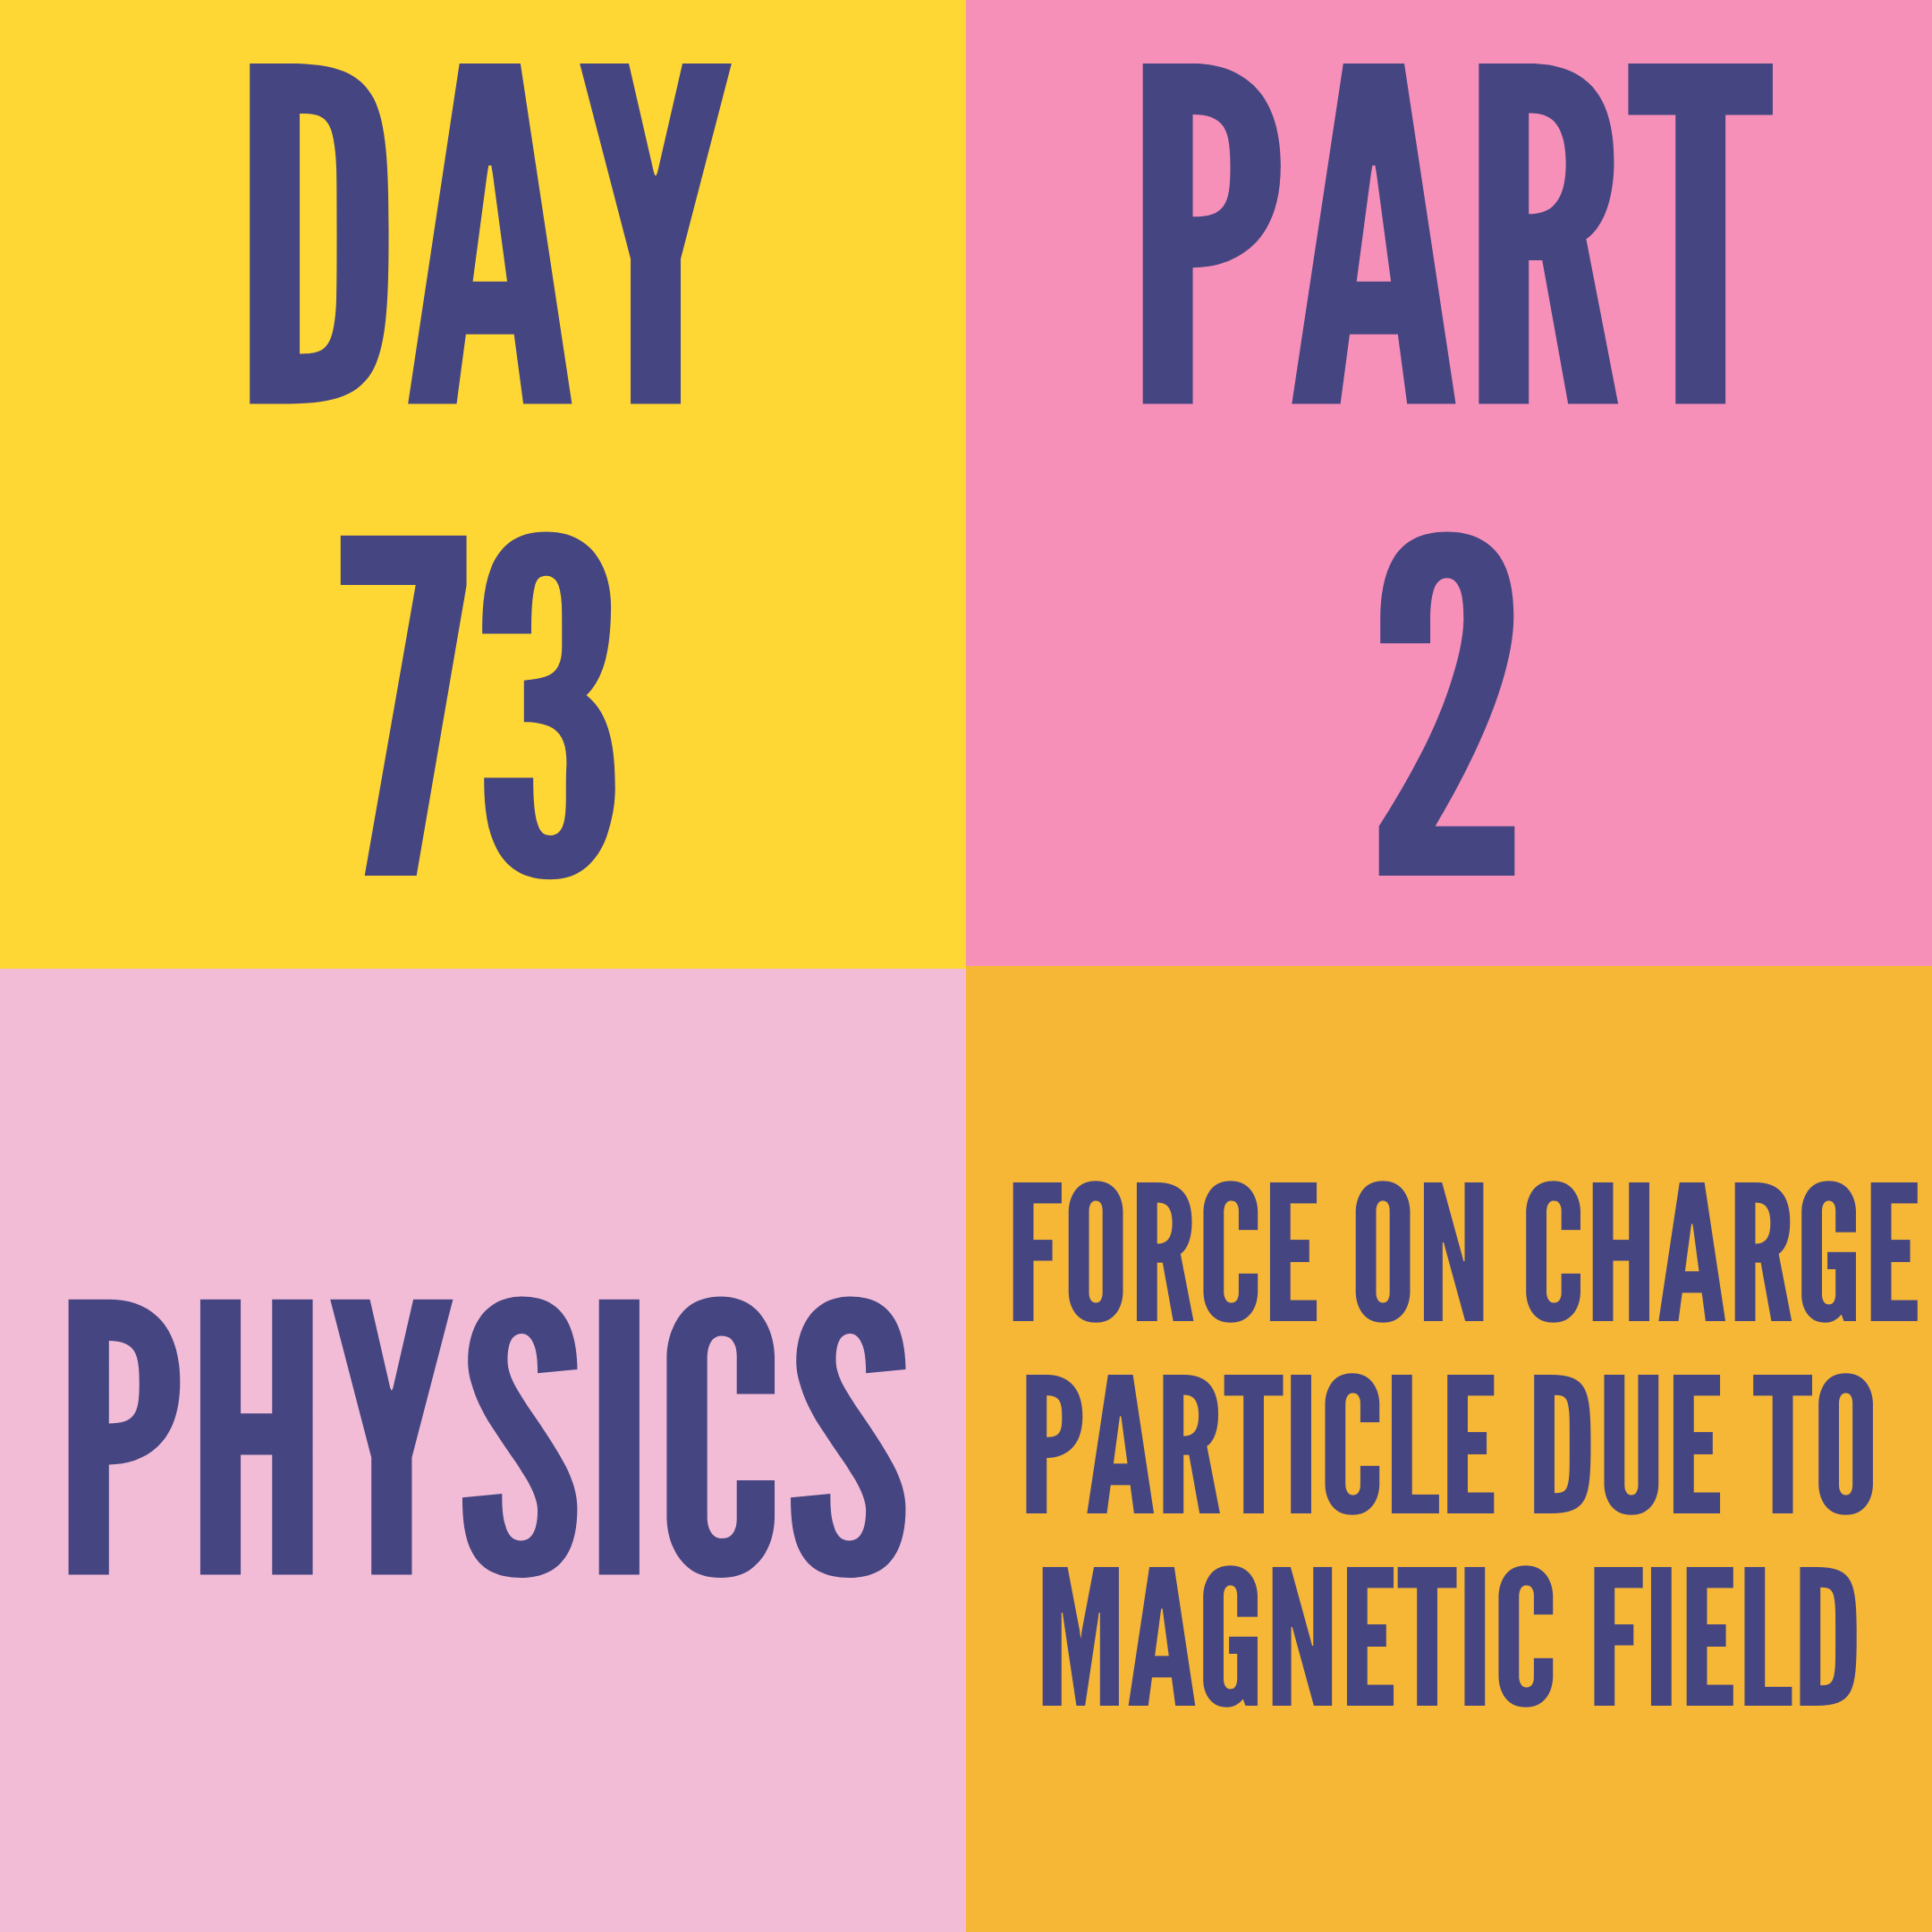 DAY-73 PART-2  FORCE ON CHARGE PARTICLE DUE TO MAGNETIC FIELD